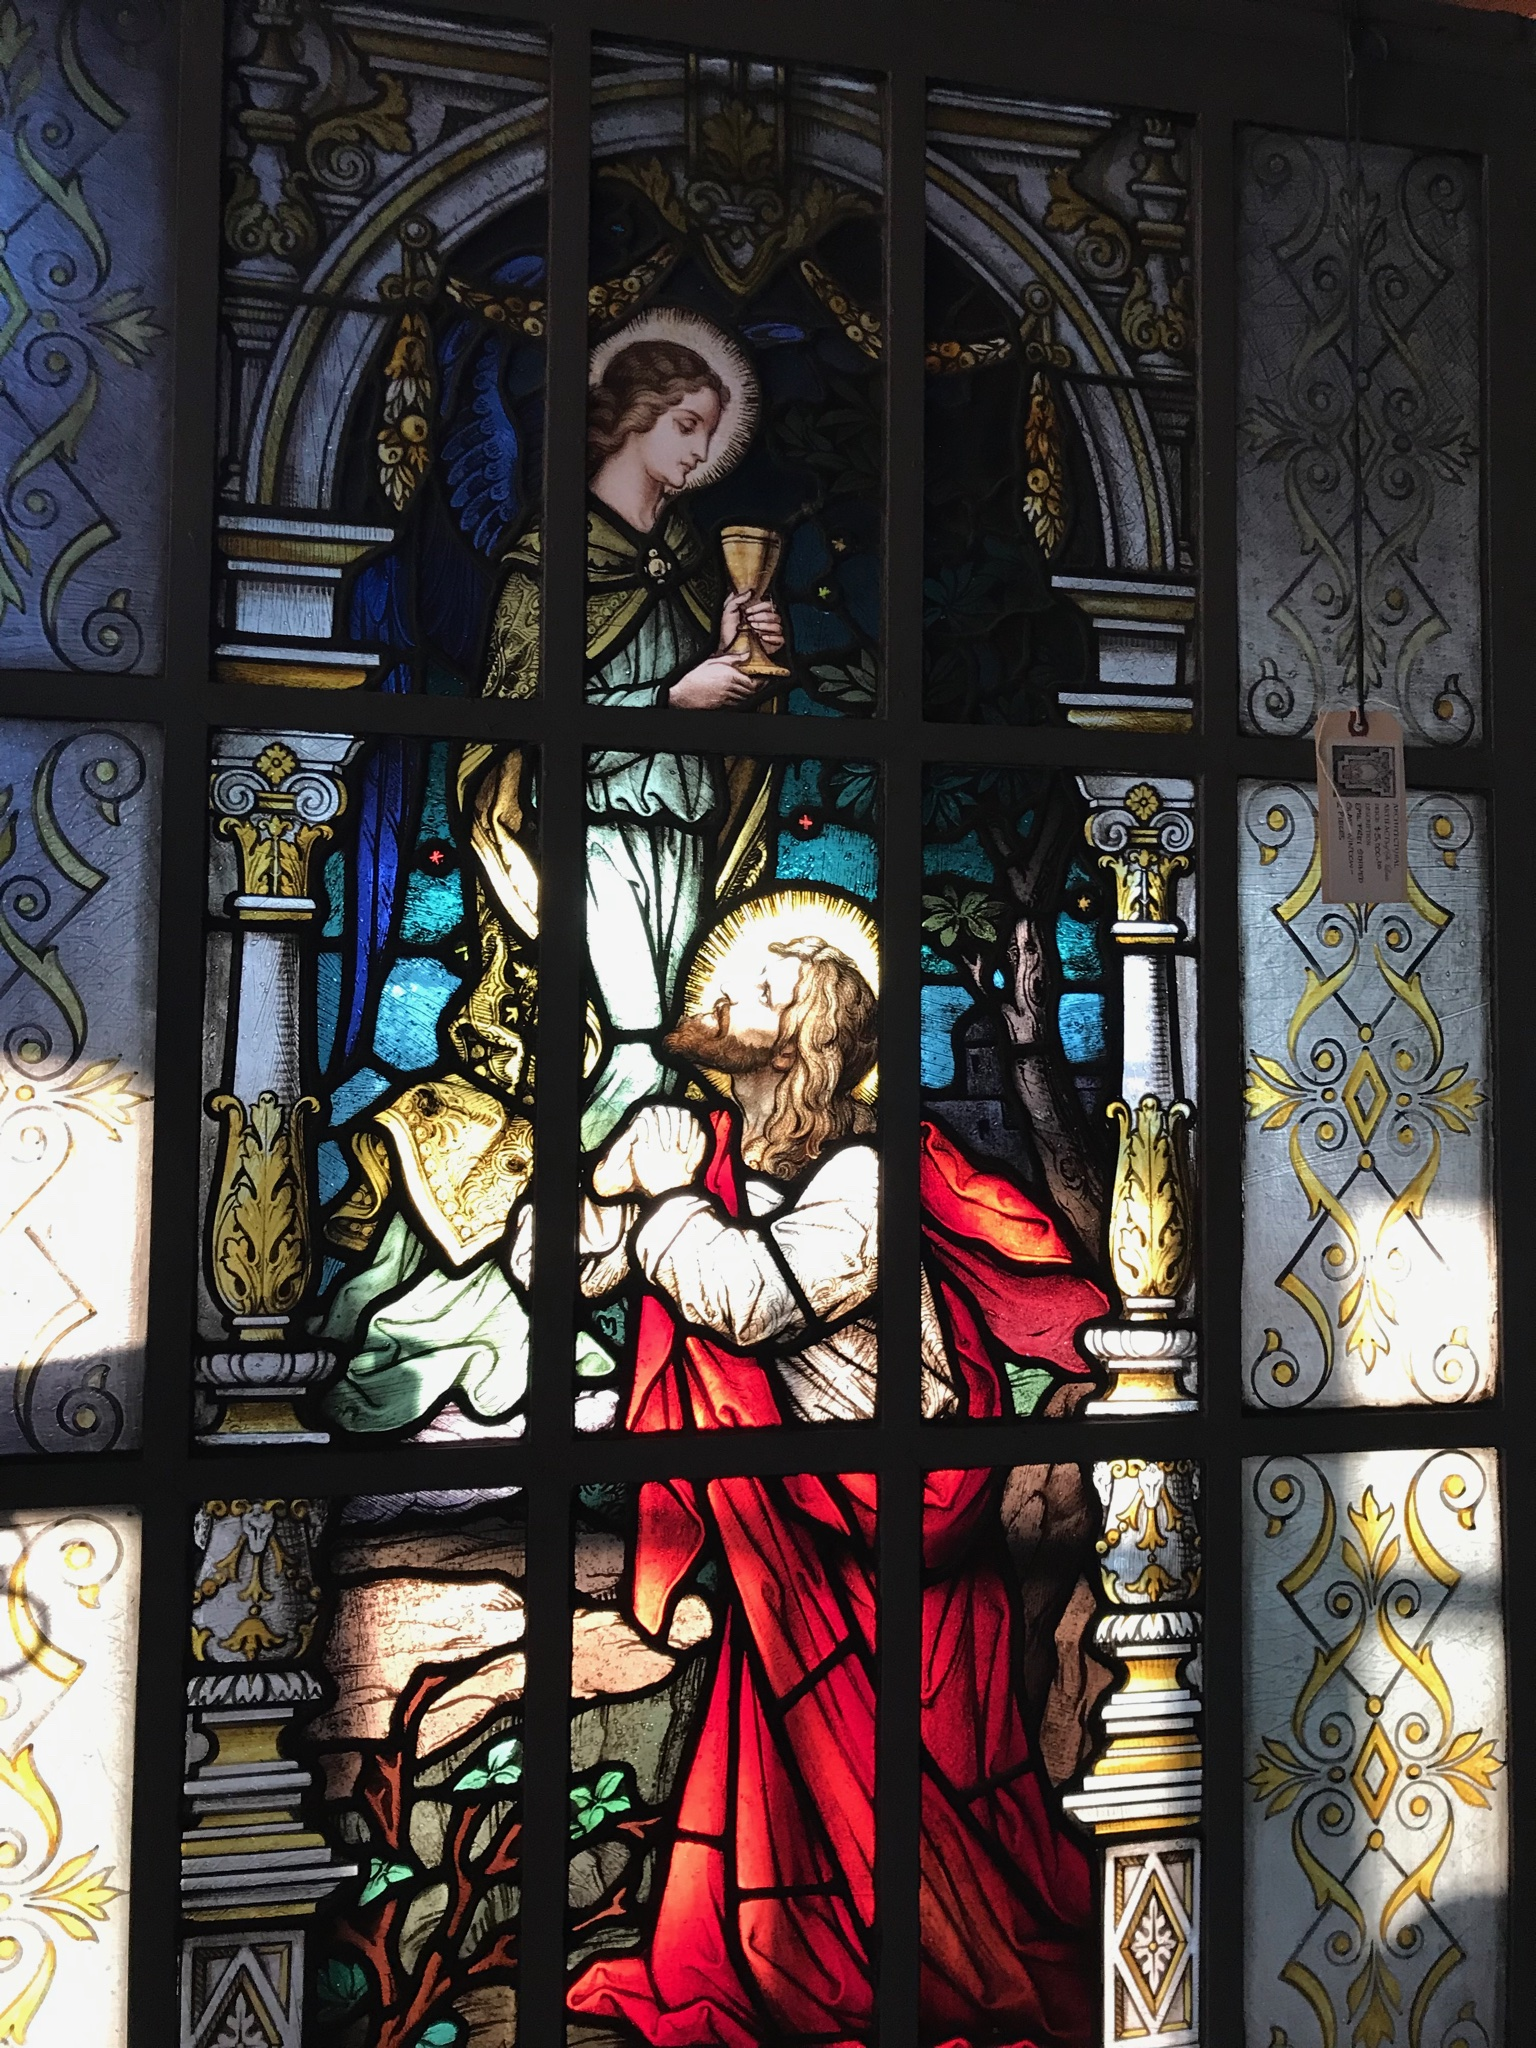 Detail of Emil Frei stained glass window.